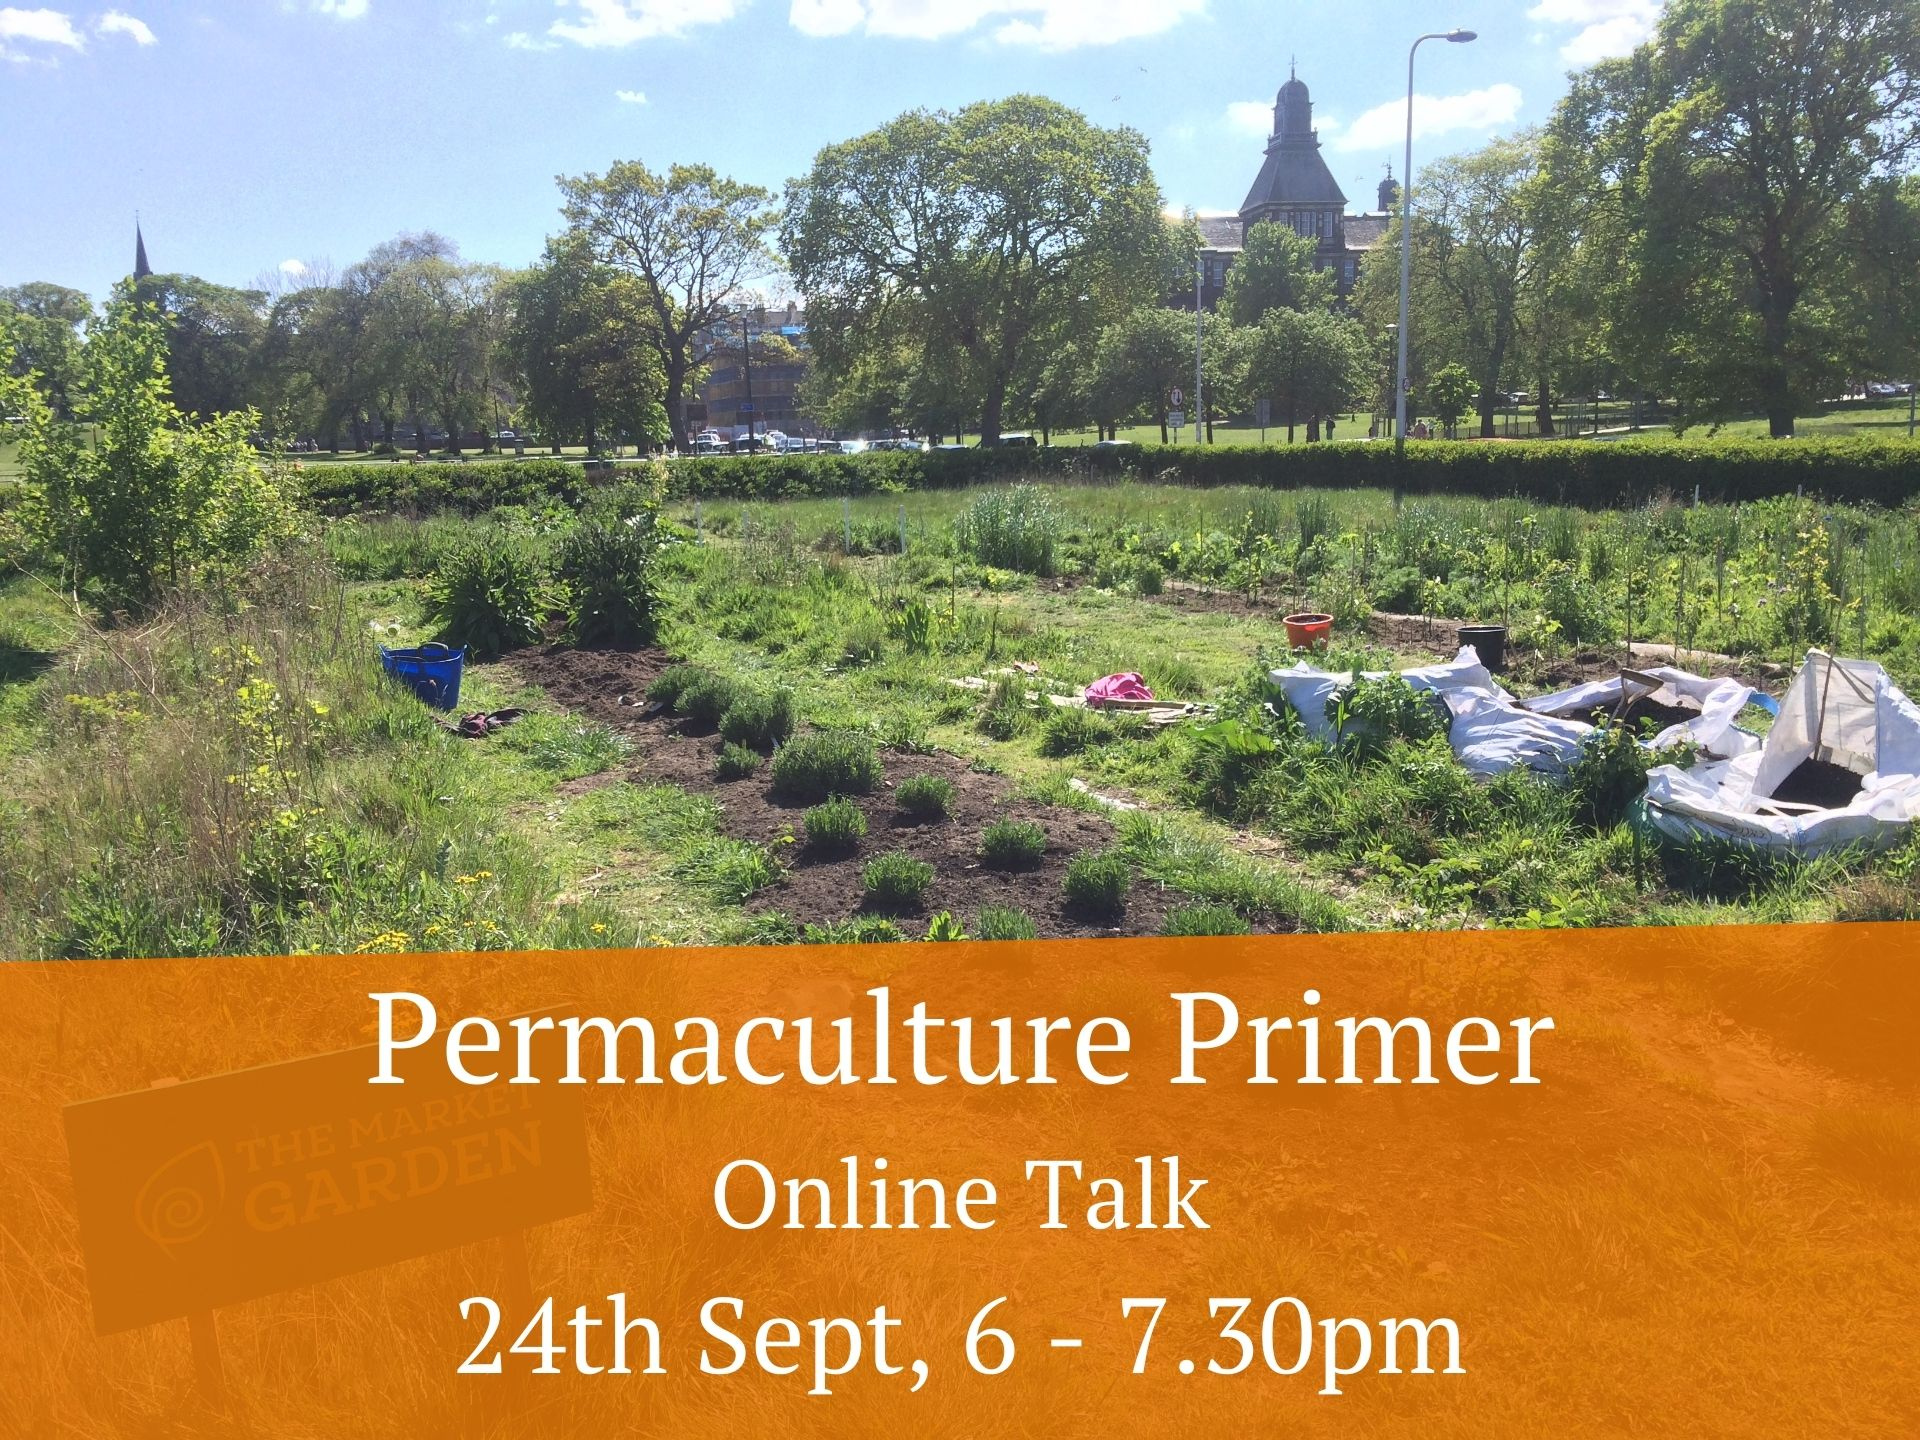 Permaculture primer term 9